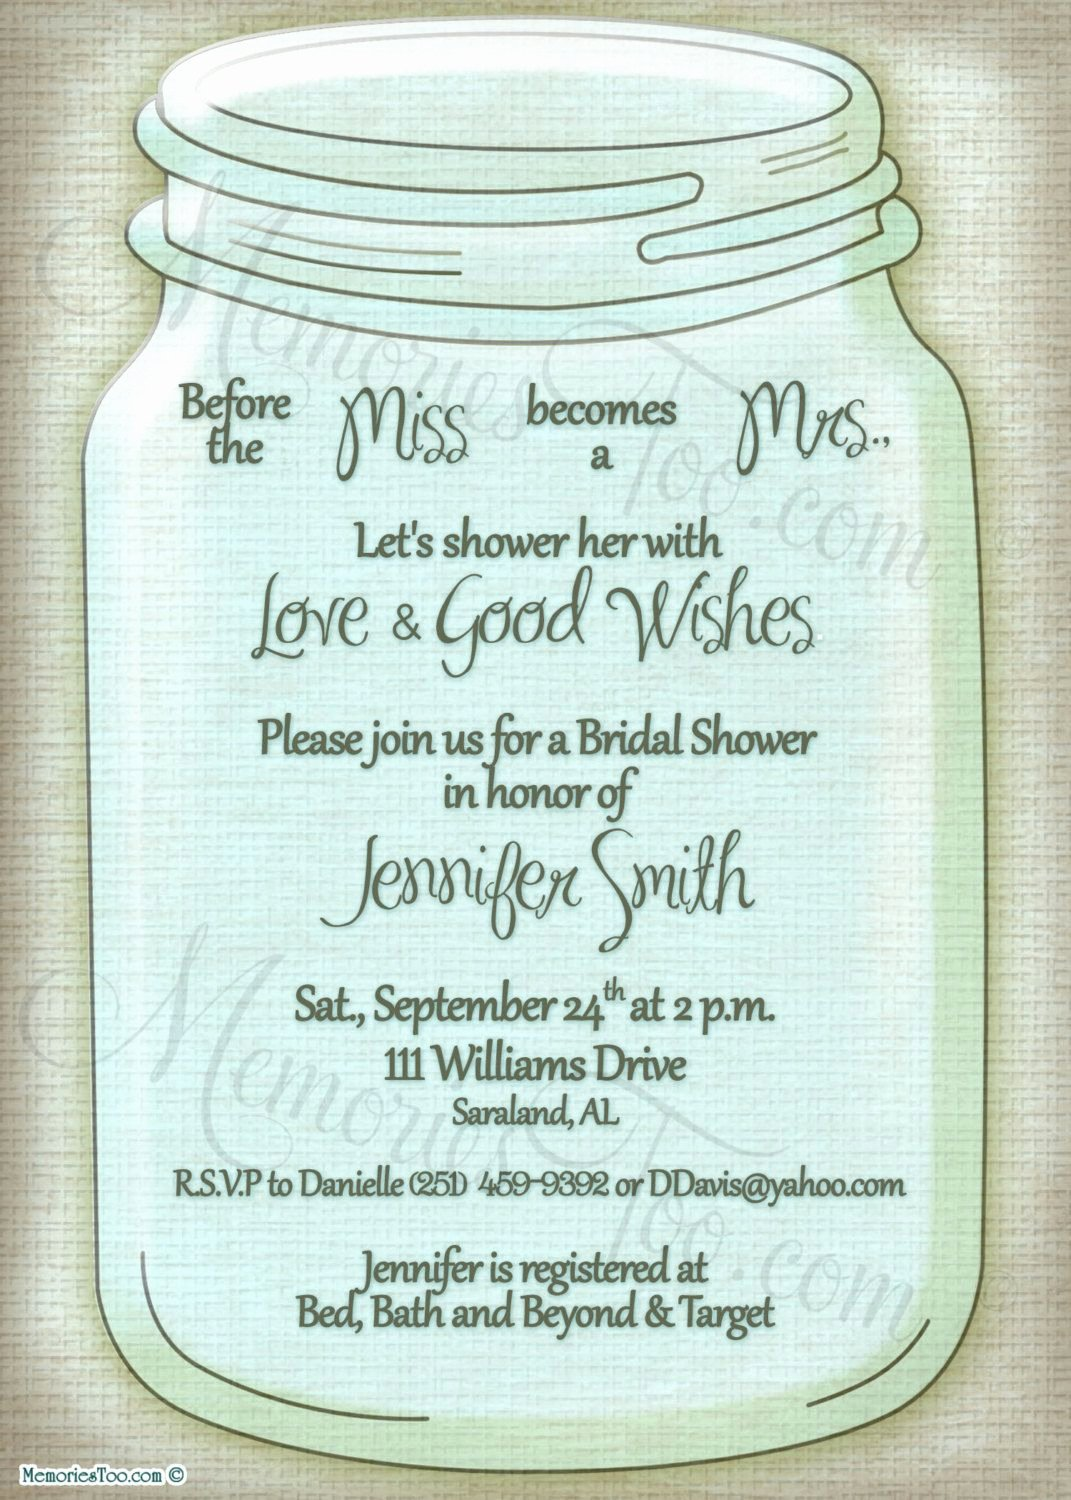 Mason Jar Invitation Template Beautiful Mason Ball Jar Invitation Diy Printable Choose Your by